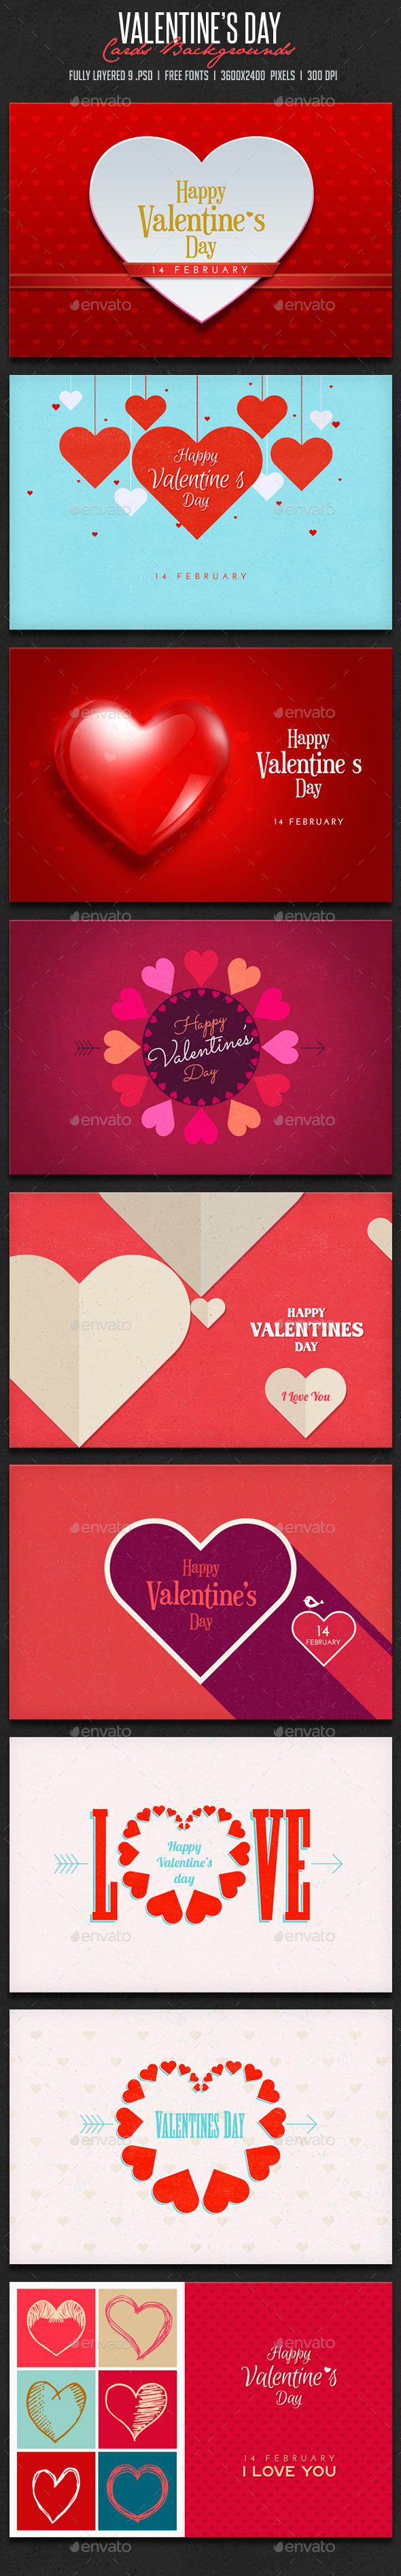 GraphicRiver Valentine s Day CardsBackgrounds 9948610